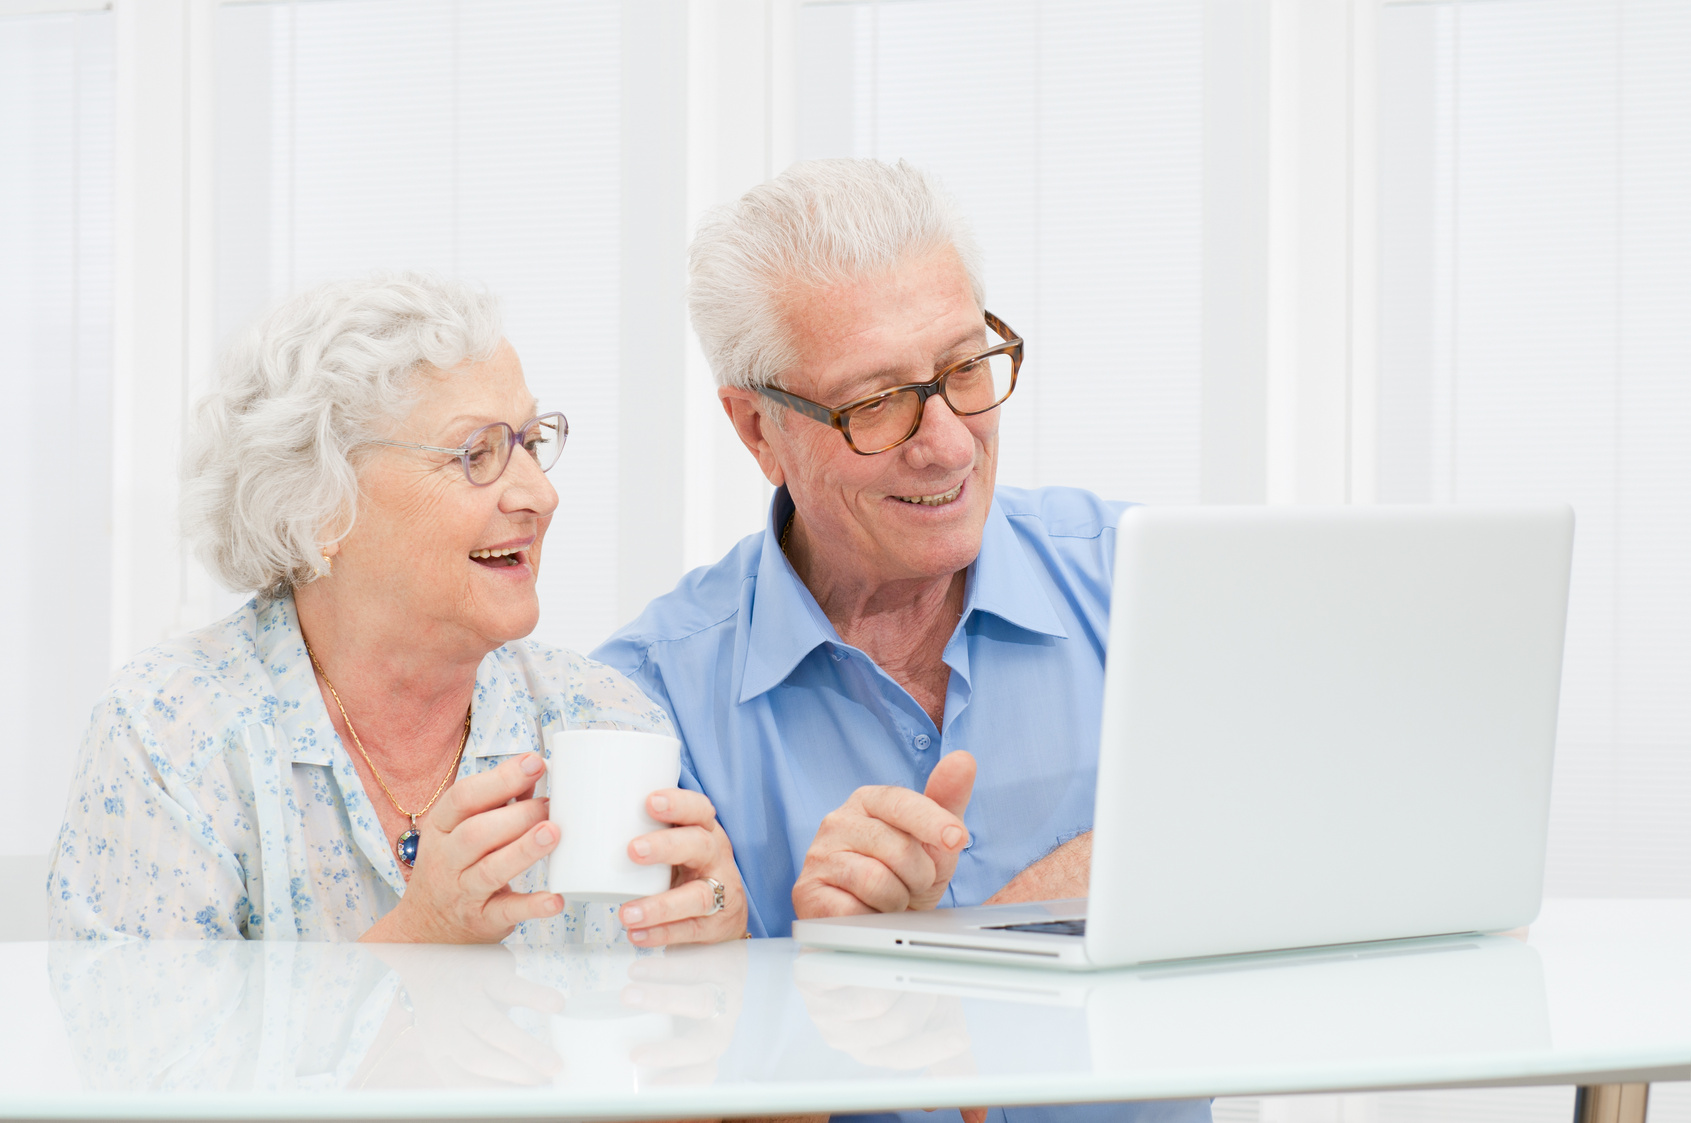 how to help old people with technology